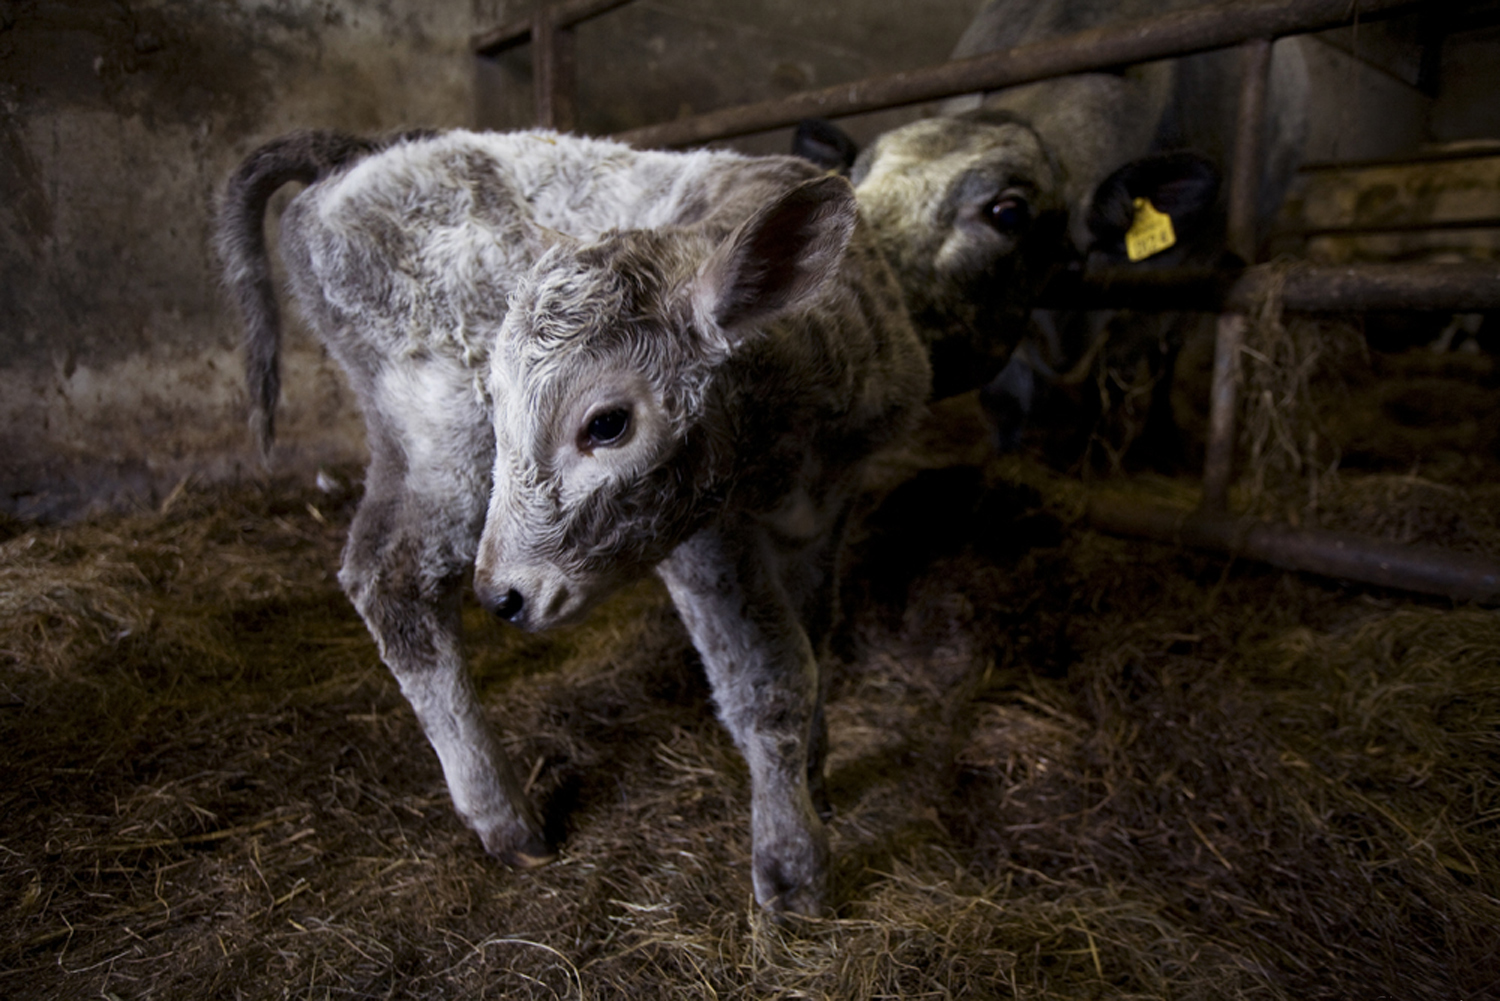 A documentary photograph of a baby calf and his mother in a separate area in the west of ireland